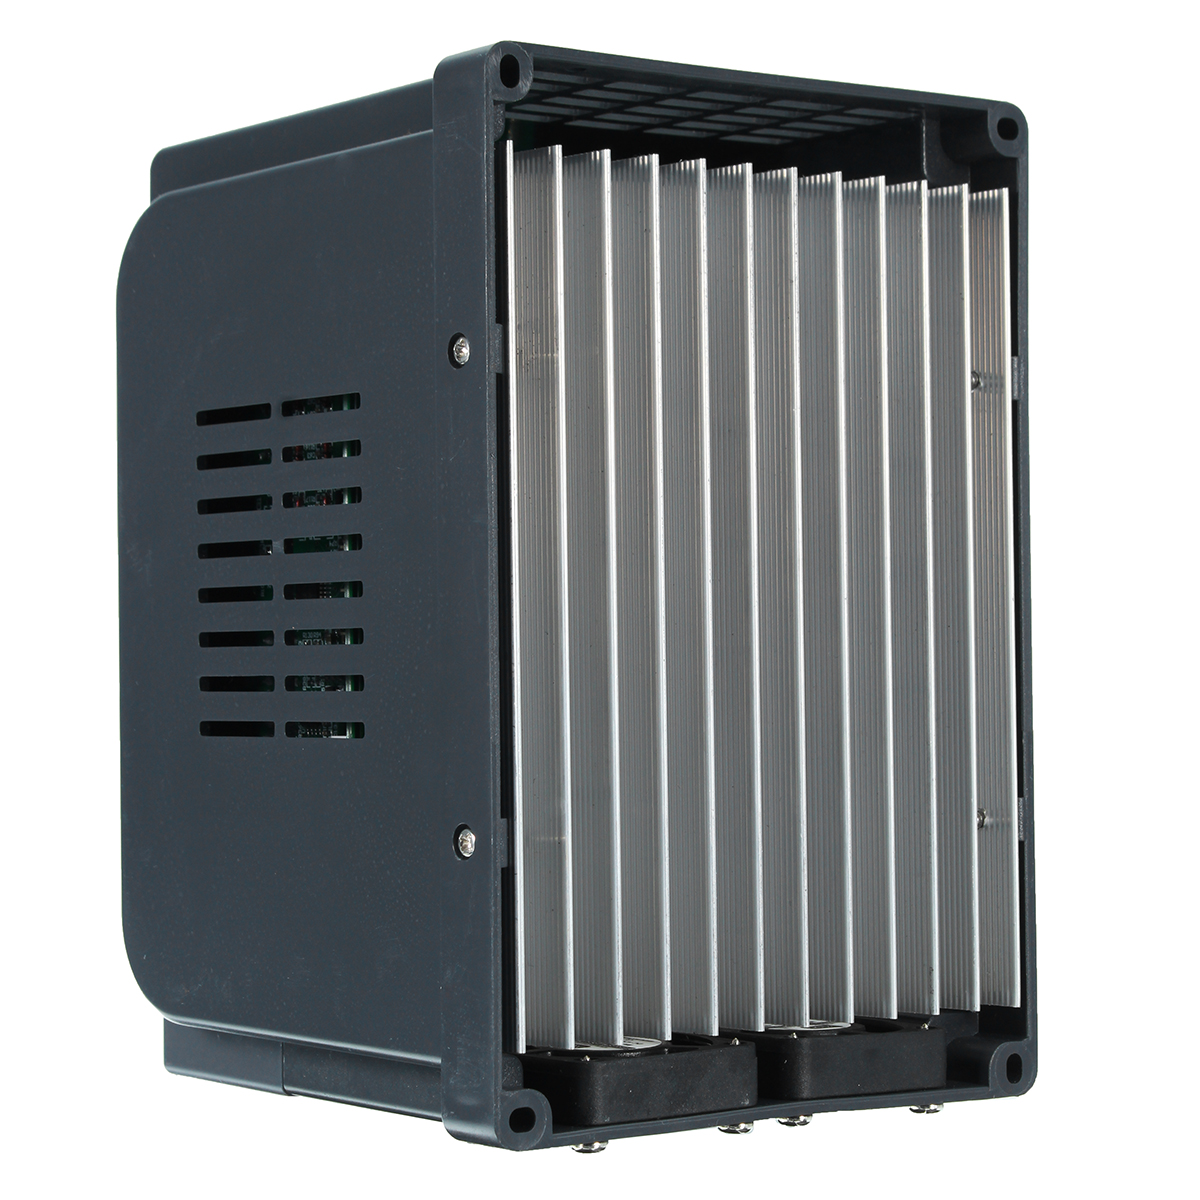 US$99 99 % 2 2KW 12A 220V 1PH In 3PH Out 380V Variable Frequency Converter  Drive Inverter V/F Vector Control Electrical Equipment & Supplies from